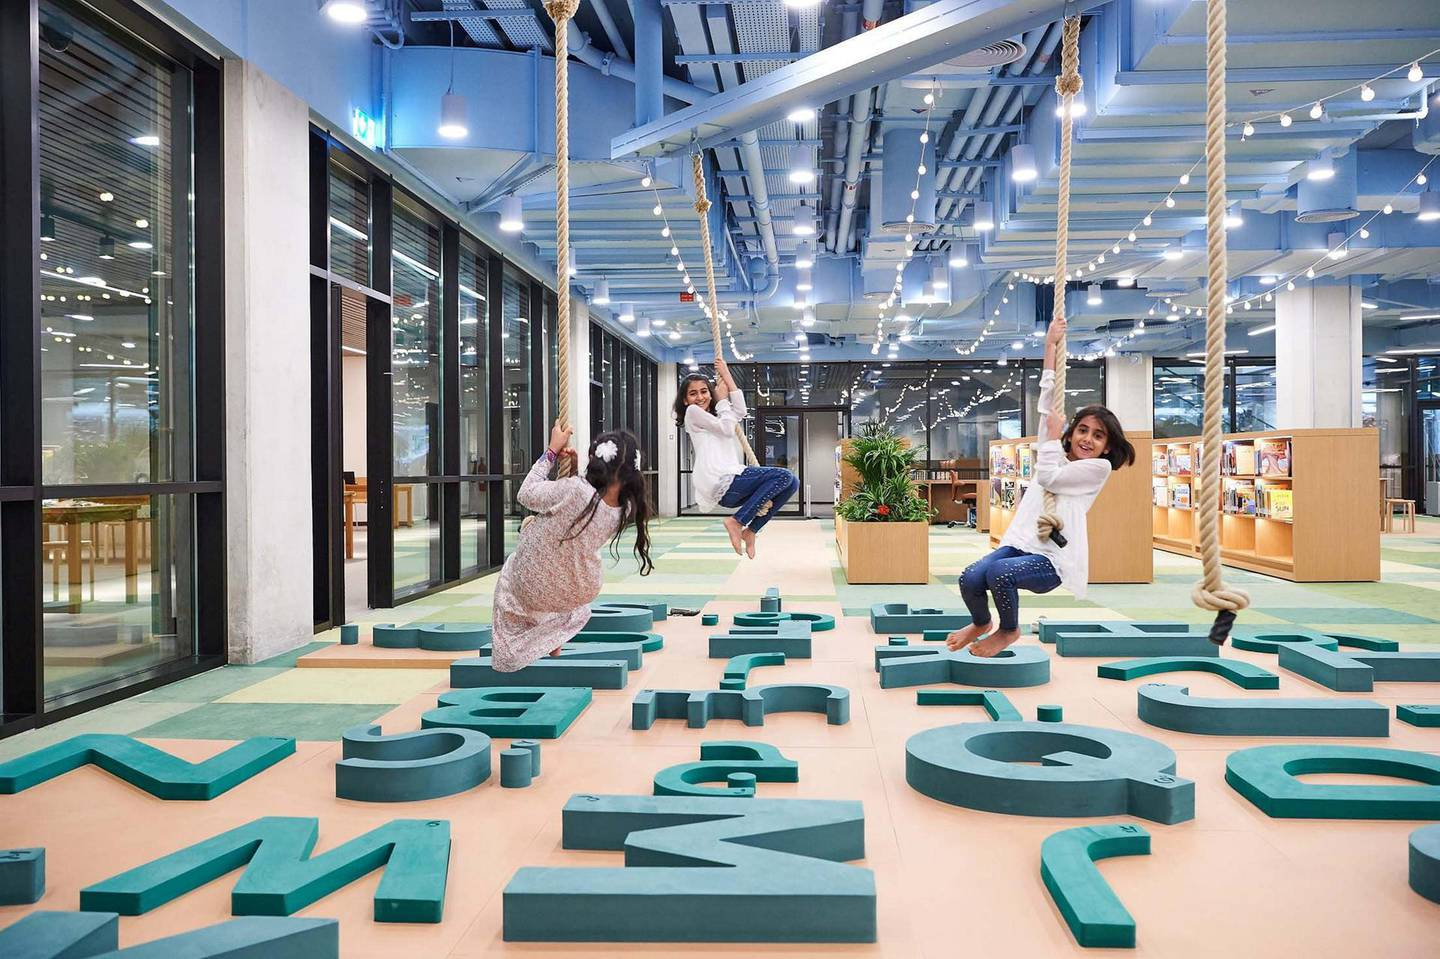 Abu Dhabi Children's Library. Courtesy Department of Culture and Tourism – Abu Dhabi